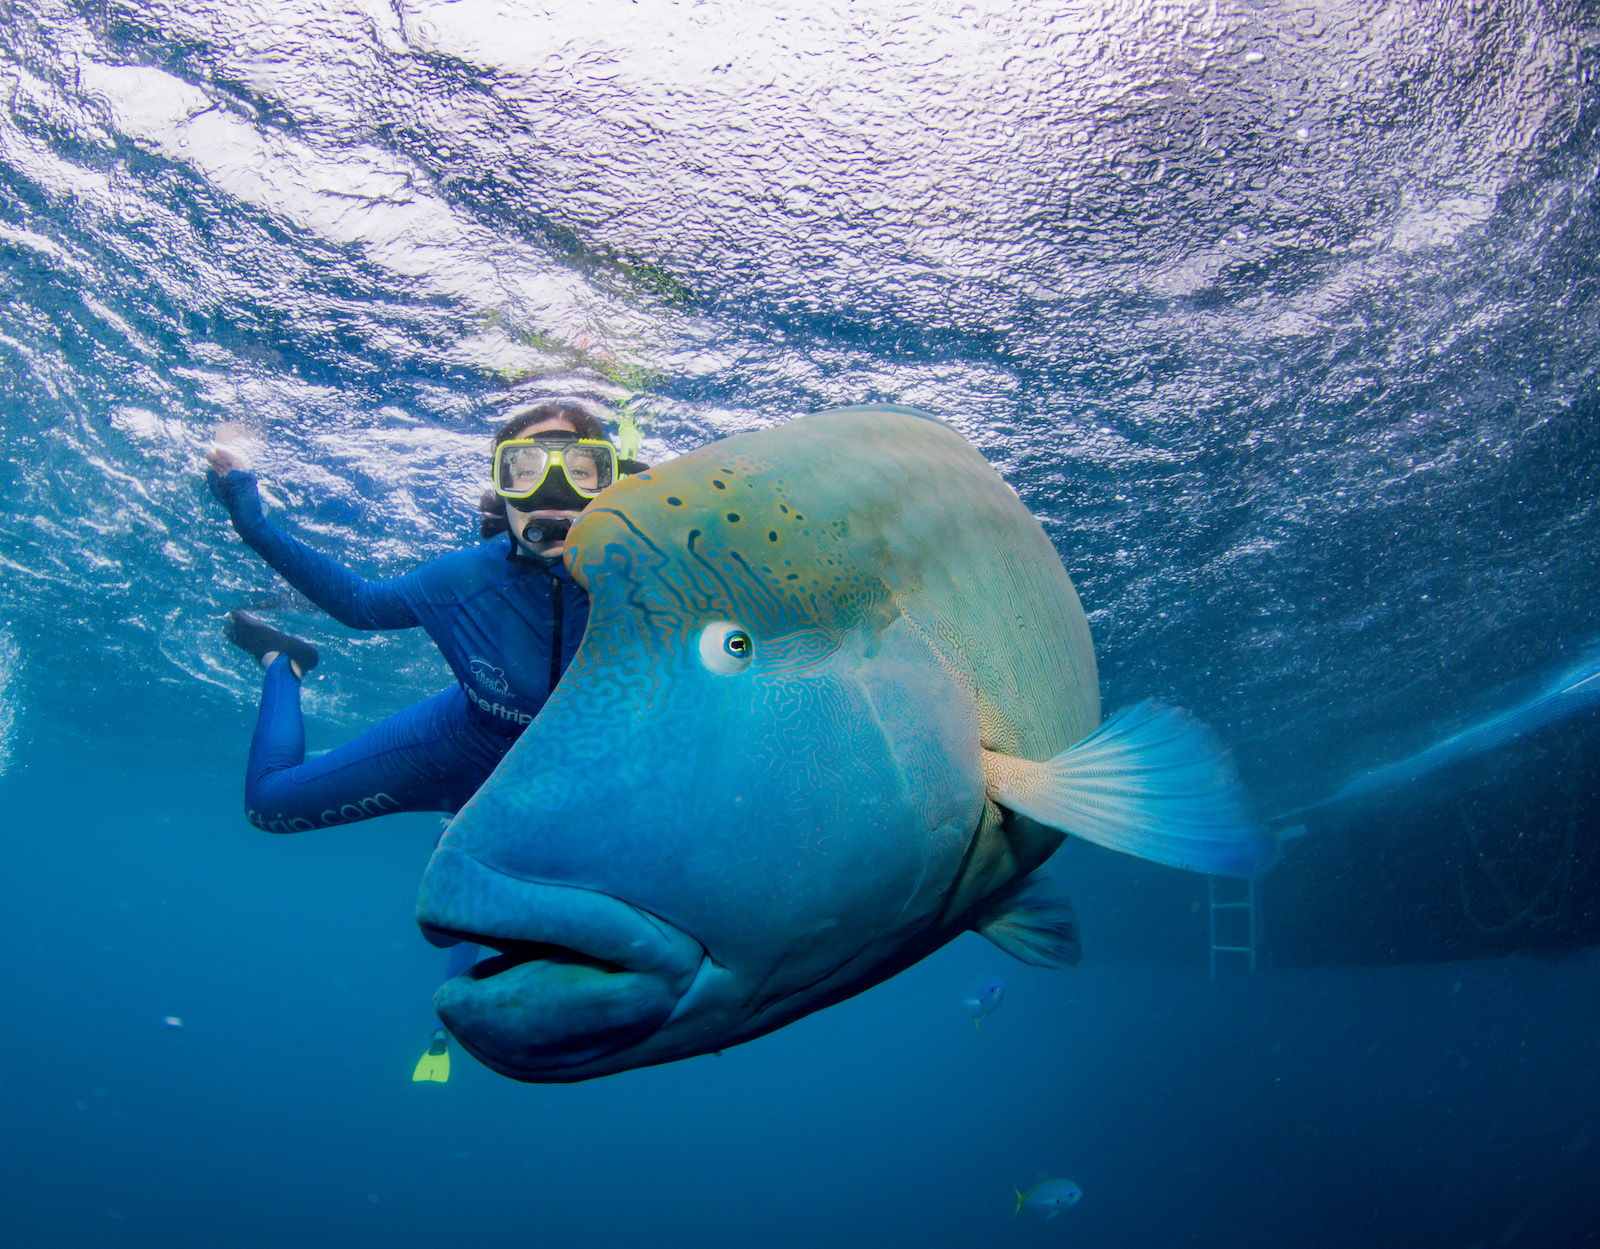 Amy Schneider dives underwater with fish